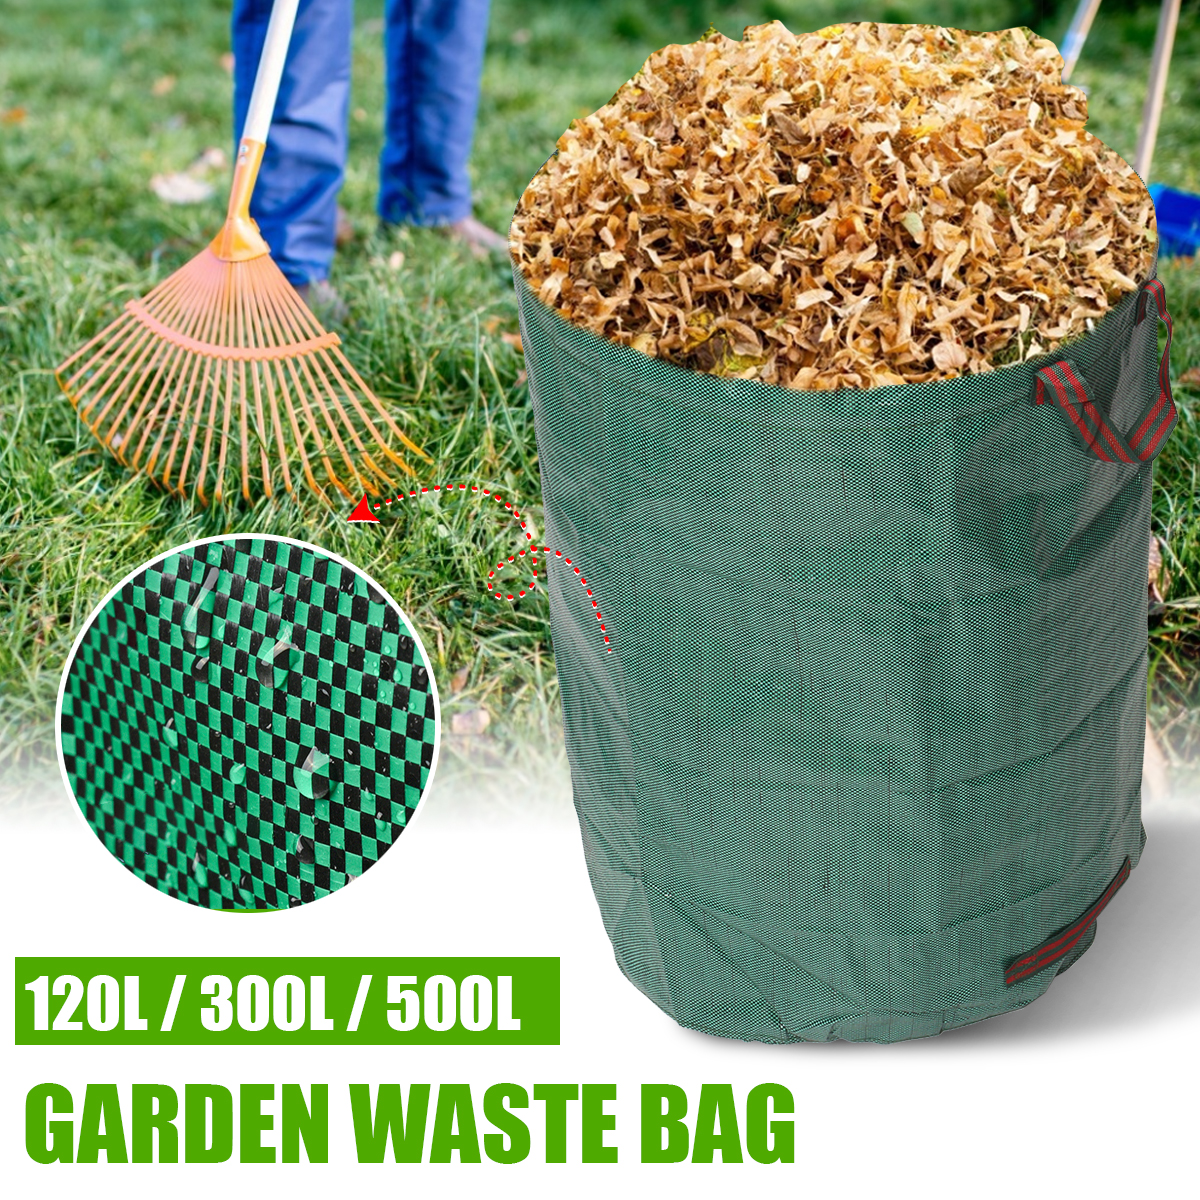 Durable 120L Reusable Garden Bags Yard Leaf Lawn Grass Waste Trash Container